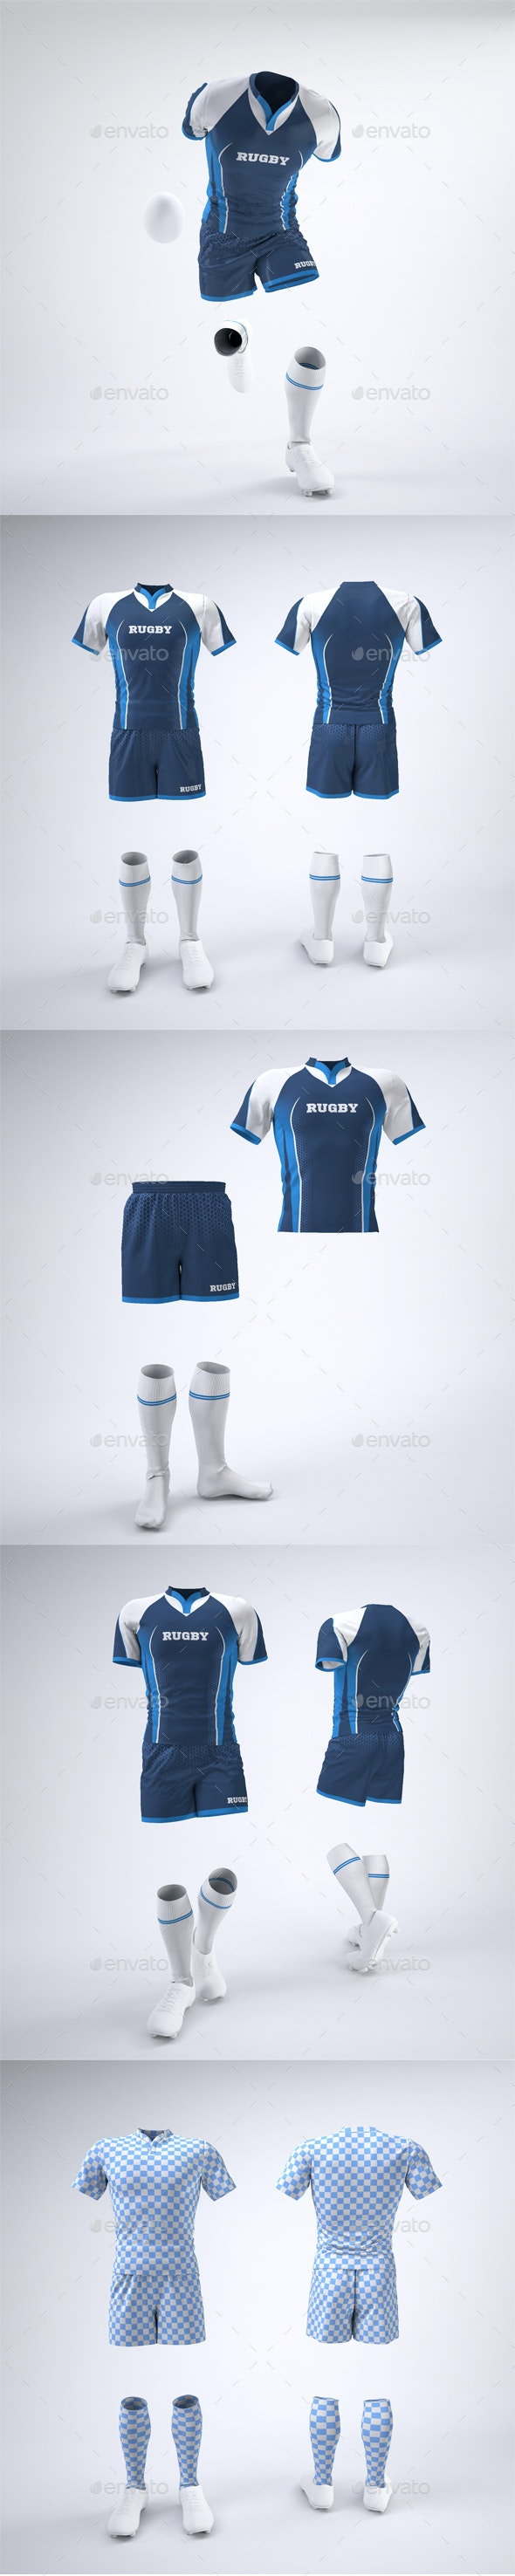 Rugby Team Uniform Mock-Up - Apparel Product Mock-Ups